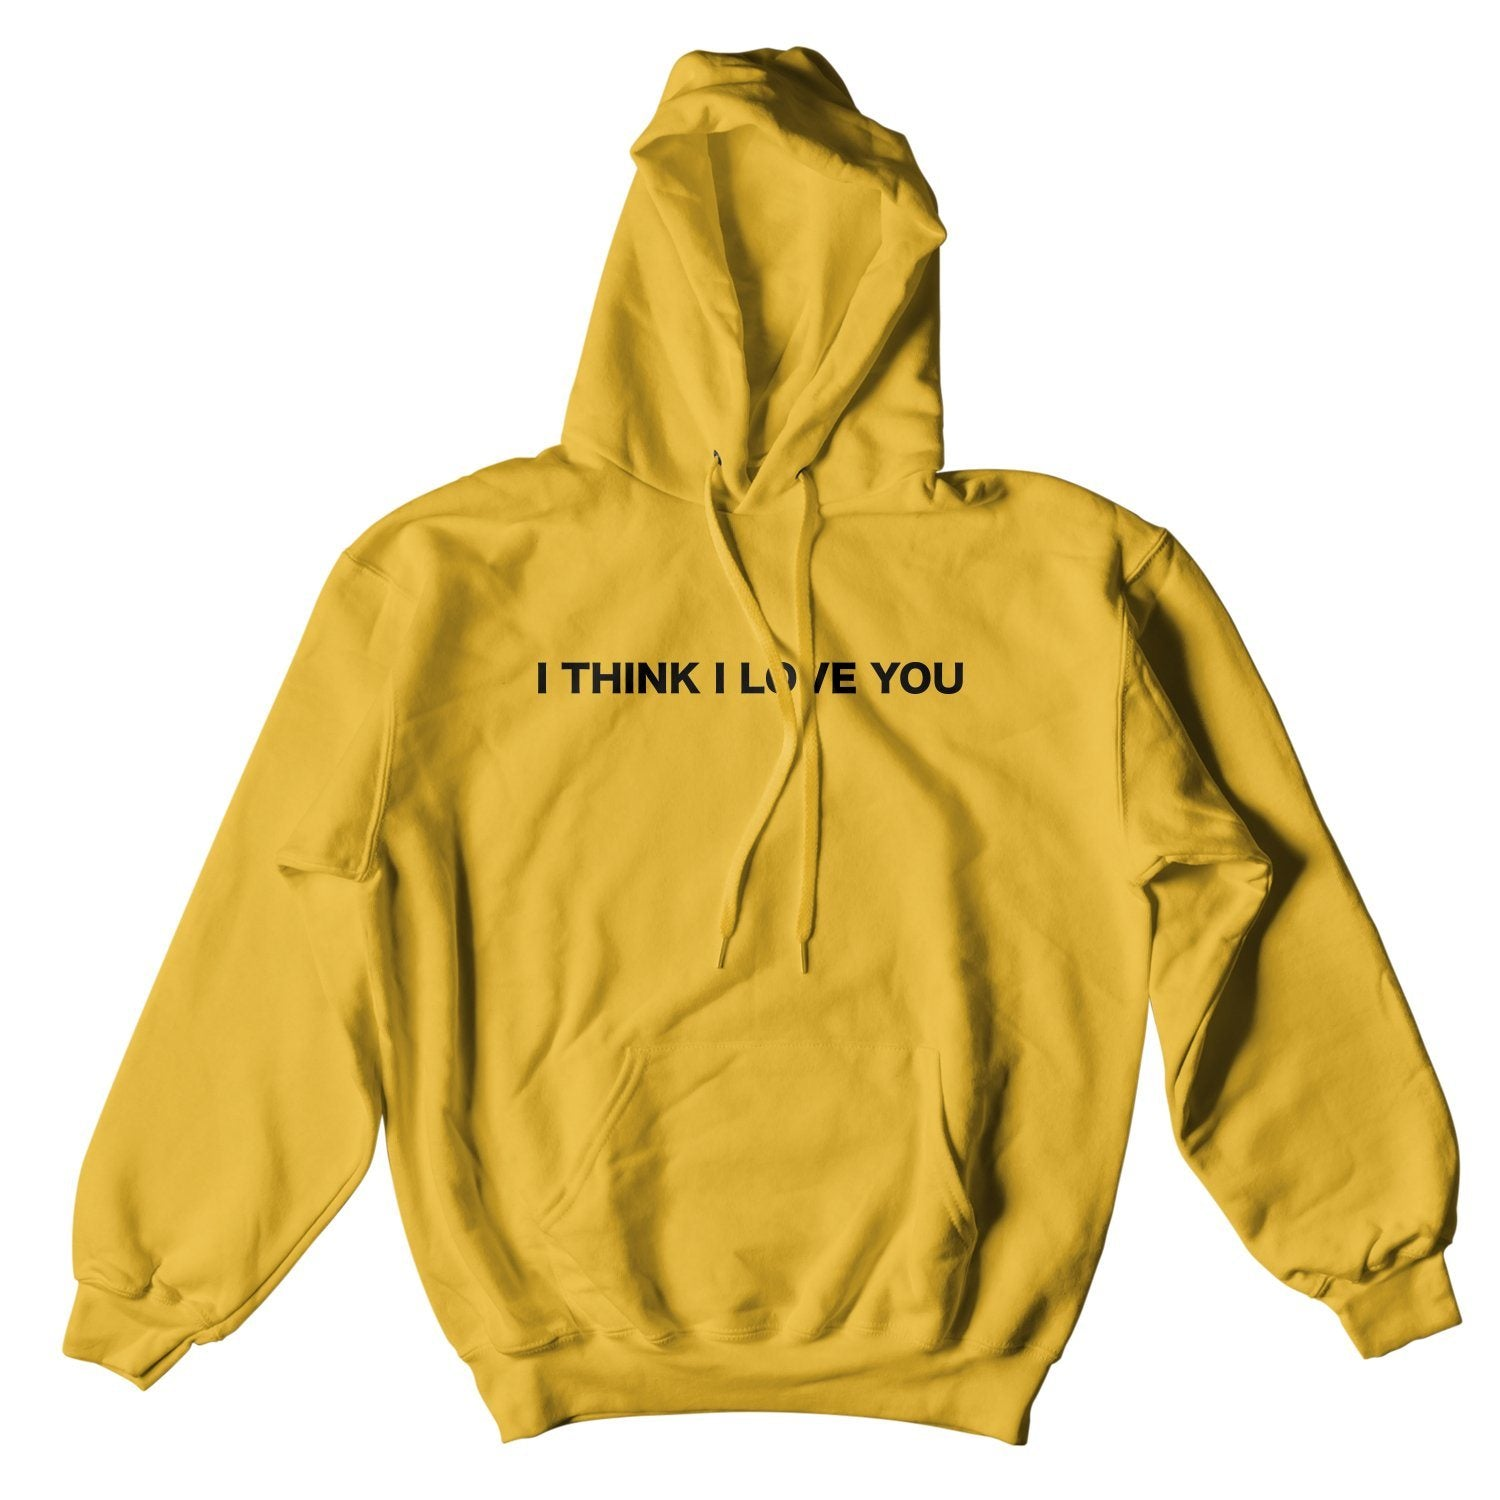 I THINK I LOVE YOU HOODIE - GOLD – Yours Truly Clothing ddd017f306e88